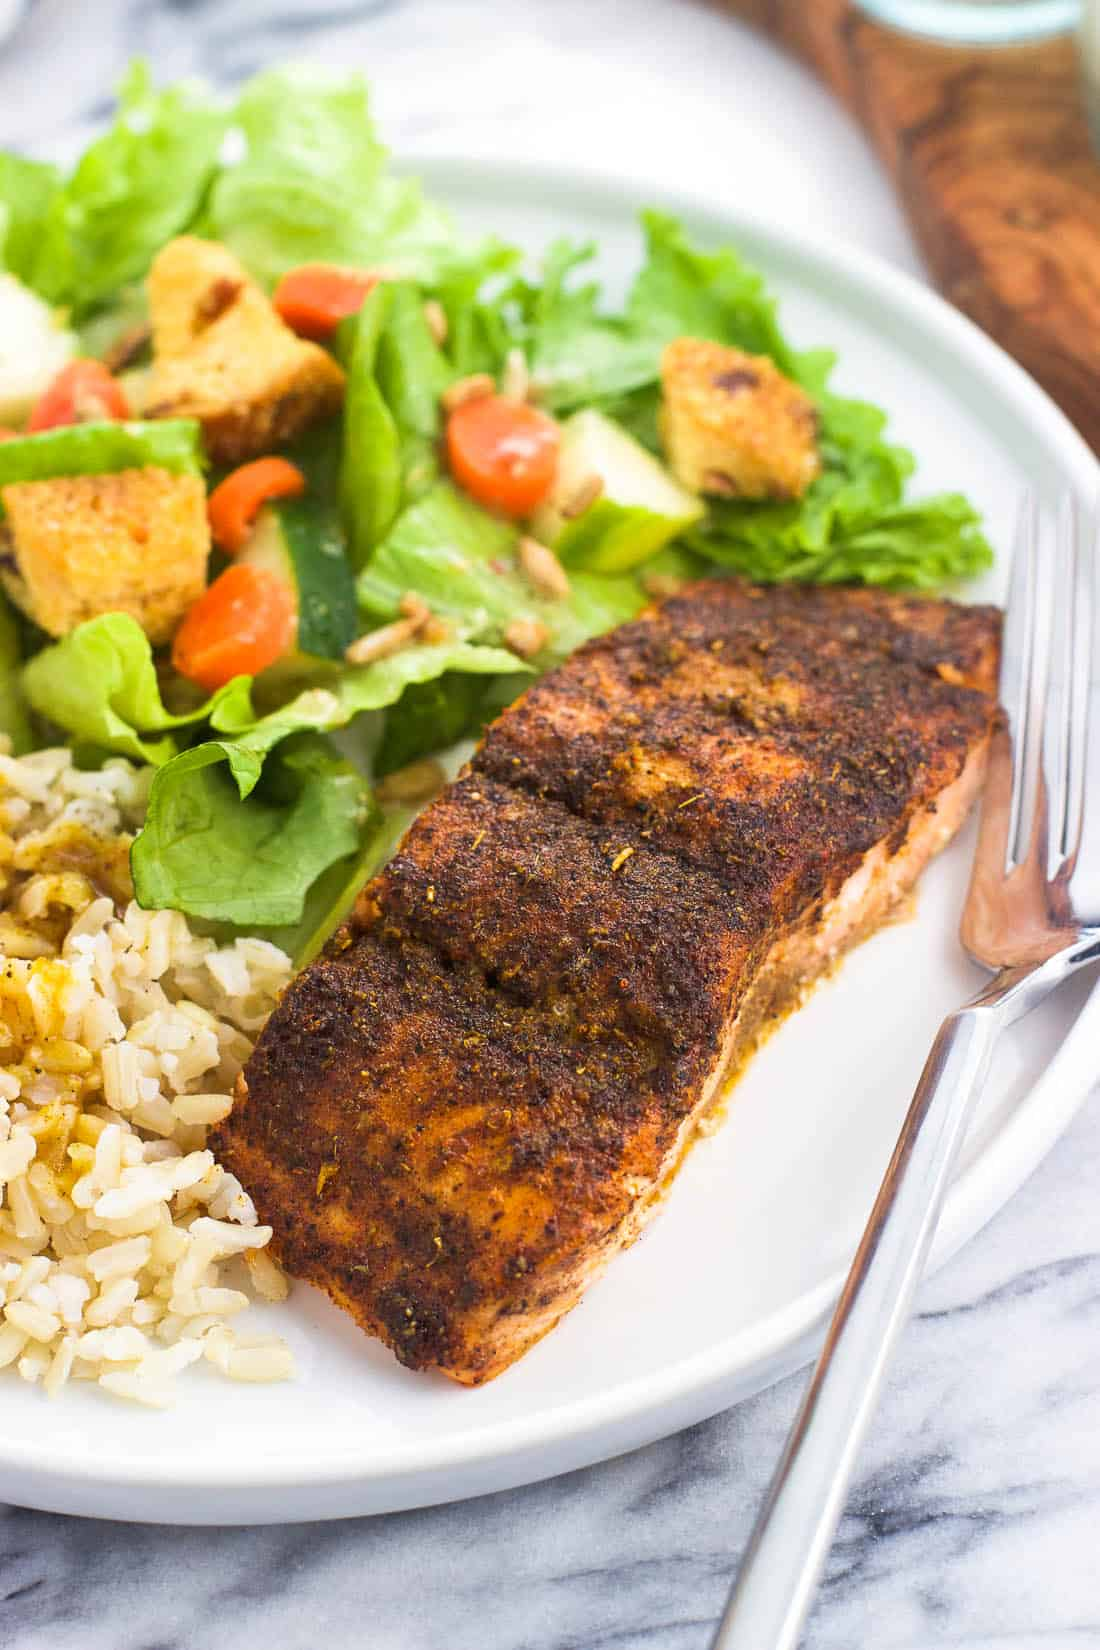 A plate of chili lime salmon, brown rice, and a side salad